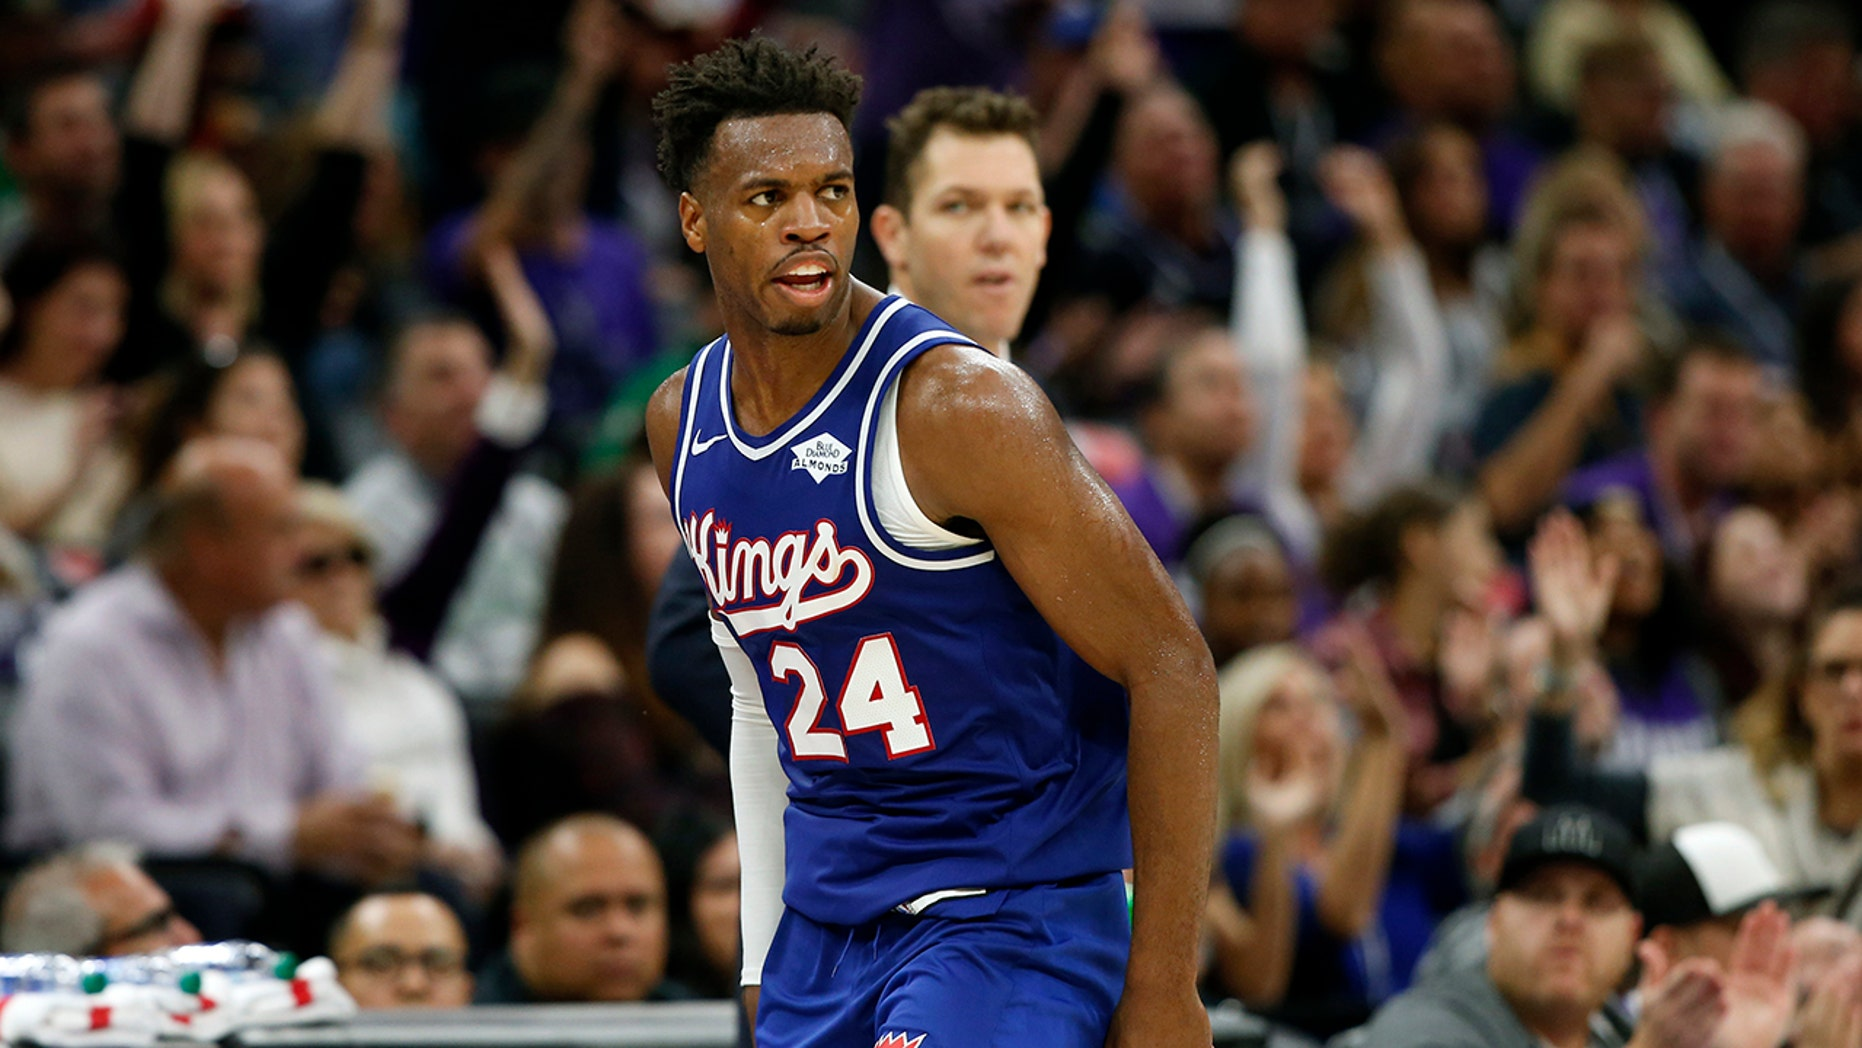 Sacramento Kings guard Buddy Hield runs down court after scoring a 3-point shoot in the closing minutes of the Kings 100-99 win over the Boston Celtics in an NBA basketball game in Sacramento, Calif., Sunday, Nov. 17, 2019. (AP Photo/Rich Pedroncelli)